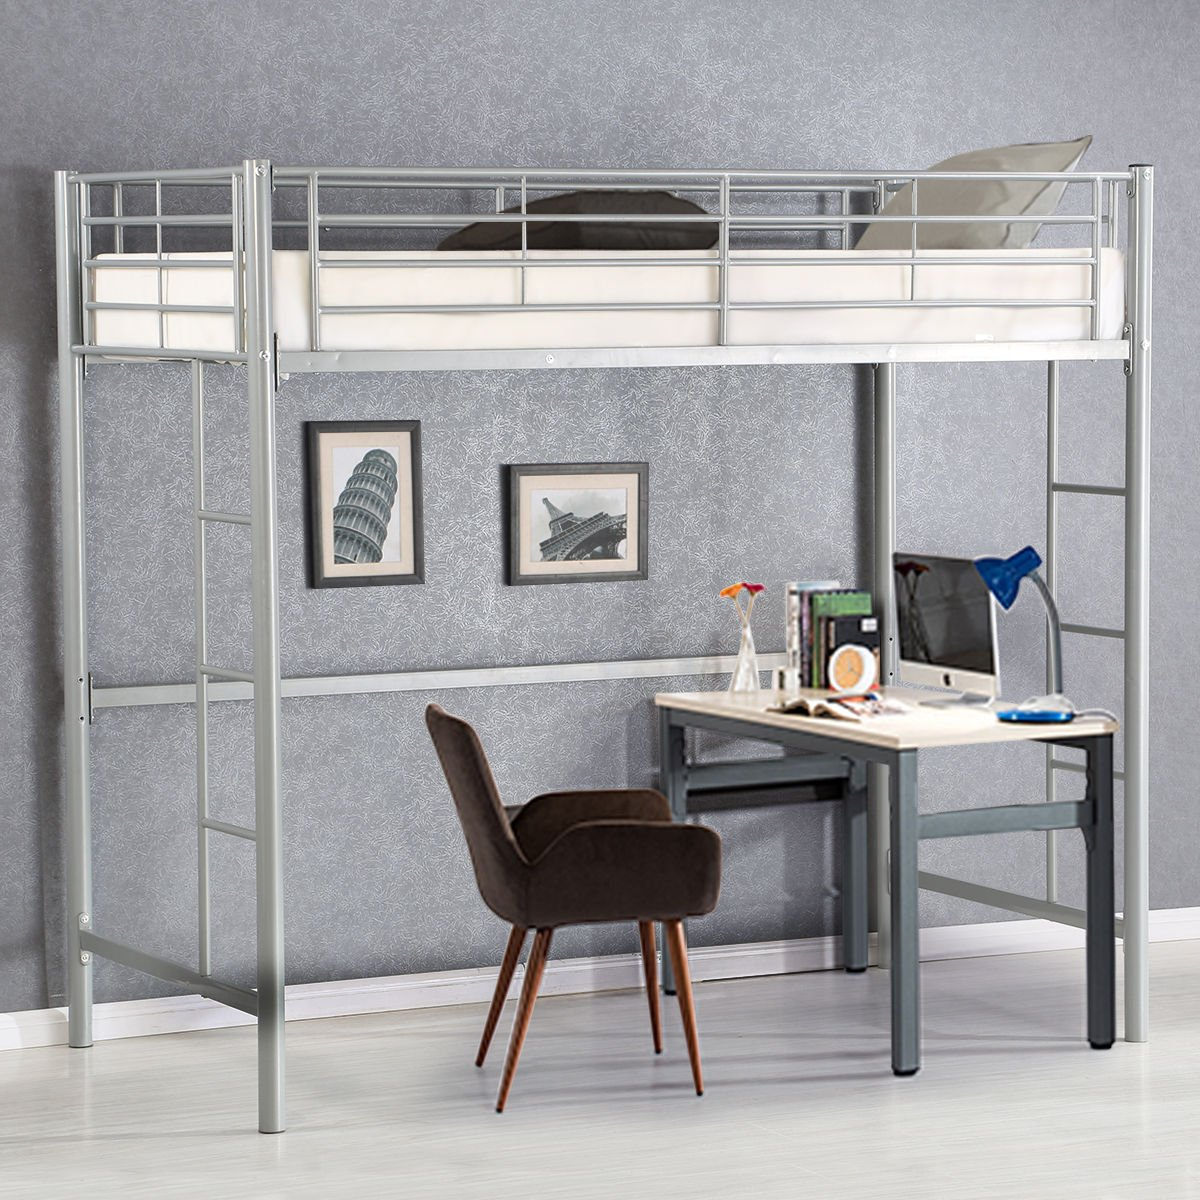 Costzon Twin Metal Loft Bed, Metal Bunk Bed with Ladders, Silver